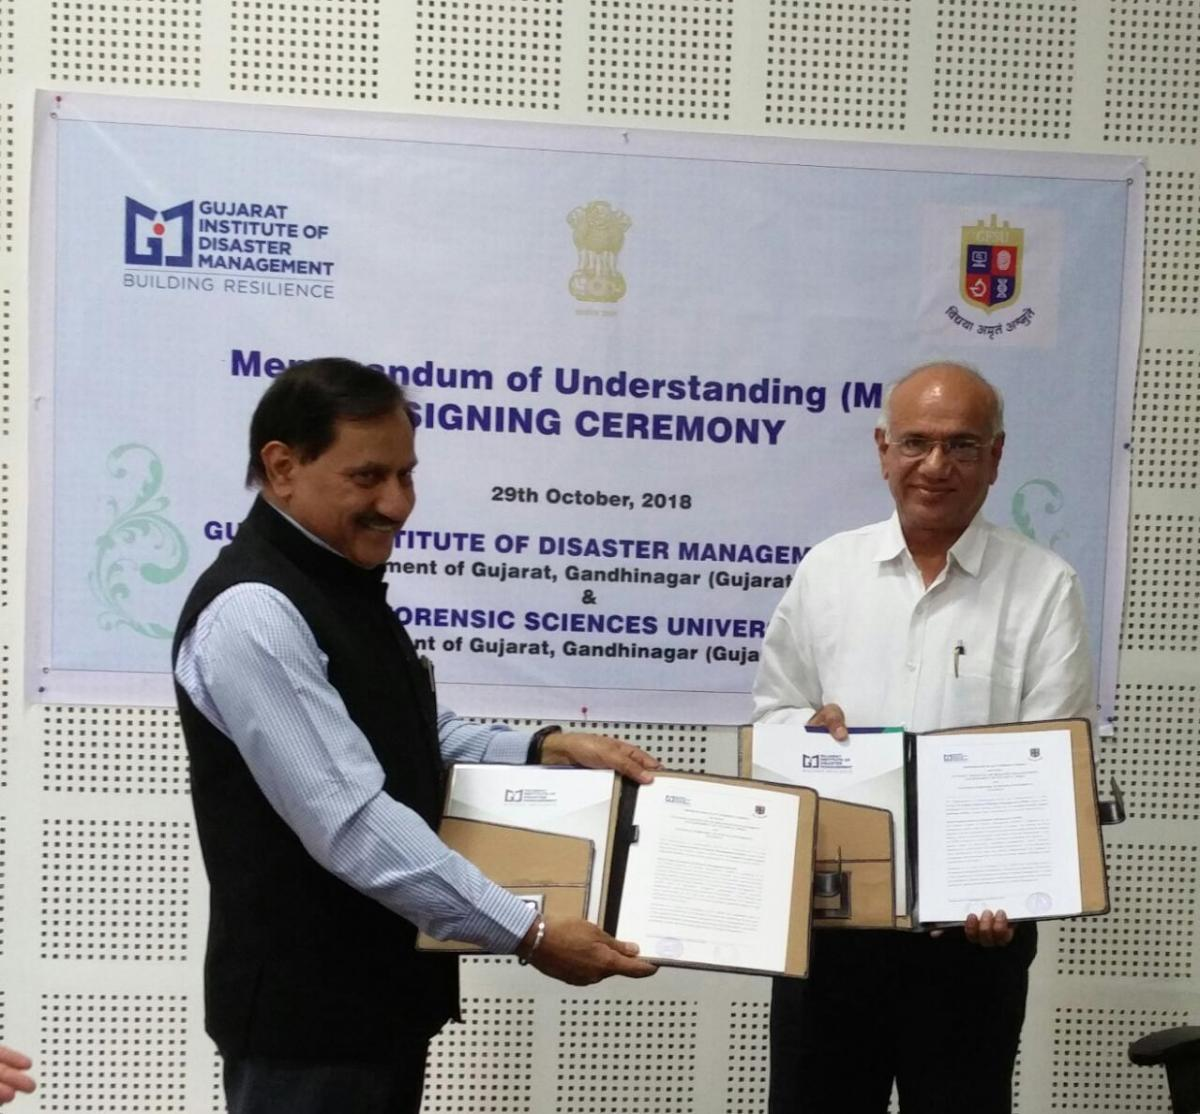 MoU formalised between GIDM and GFSU